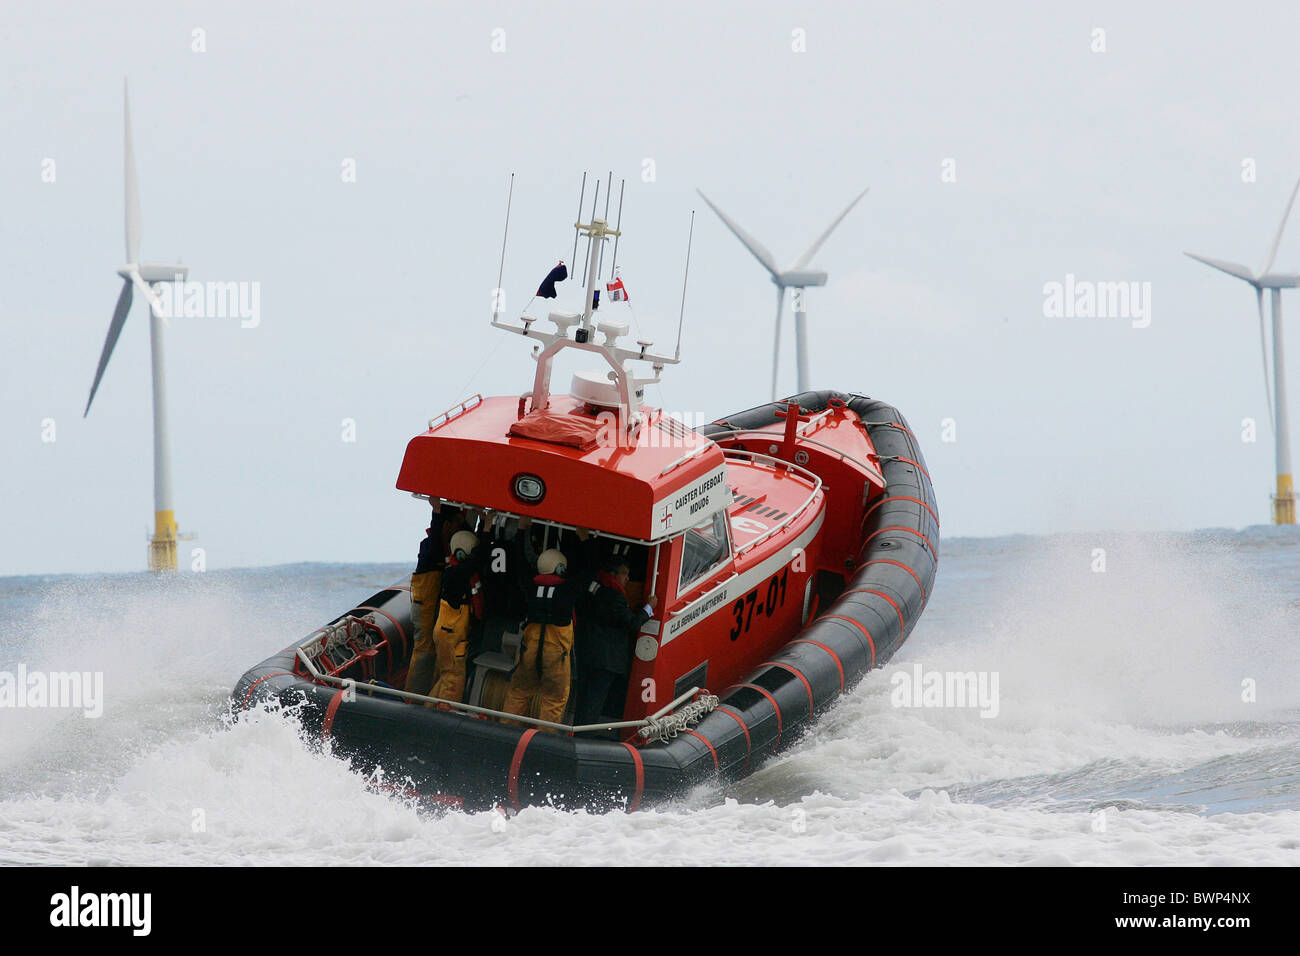 New Royal National Lifeboat Institute RNLI lifeboat launched from the Caister Lifeboat Station in Norfolk Stock Photo